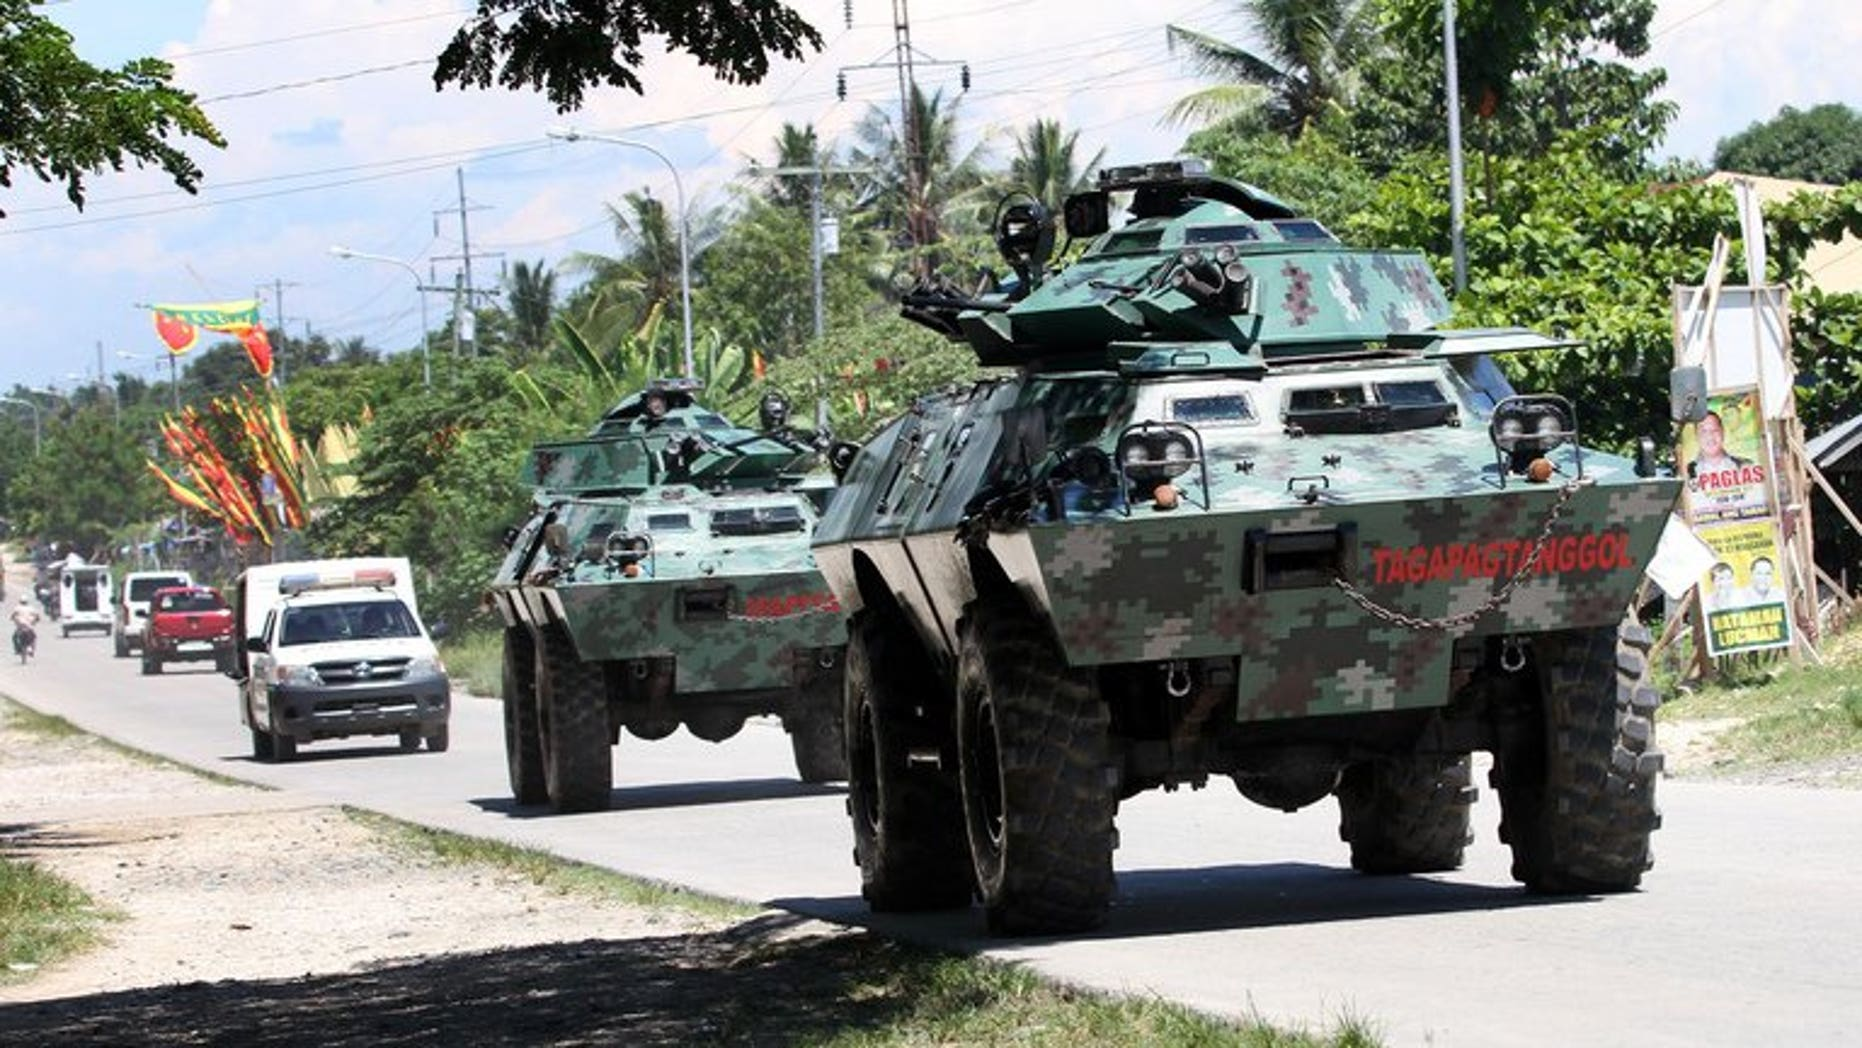 This photo taken on May 13, 2013 shows military armoured personnel carriers rumbling along a highway in Mindanao. Seven people were killed when communist insurgents attacked a rural army outpost there.